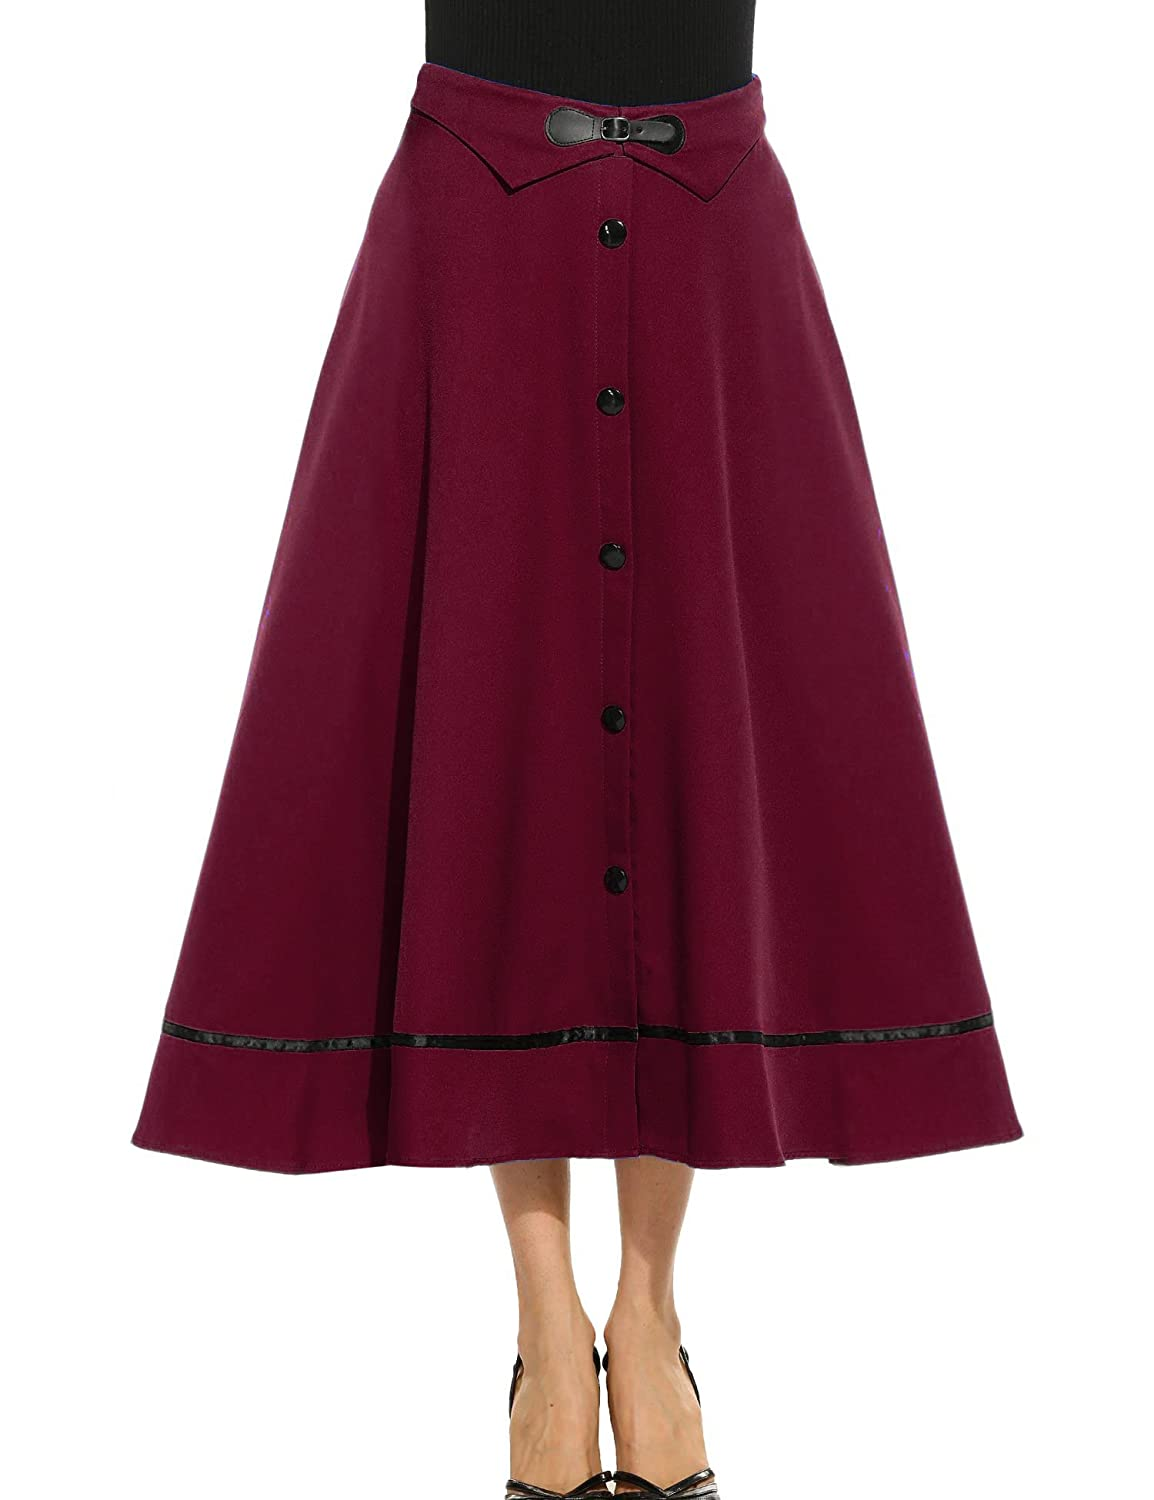 1950s Swing Skirt, Poodle Skirt, Pencil Skirts ANGVNS Womens Vintage High Waist Button Down Pleated Swing Skirt $18.99 AT vintagedancer.com